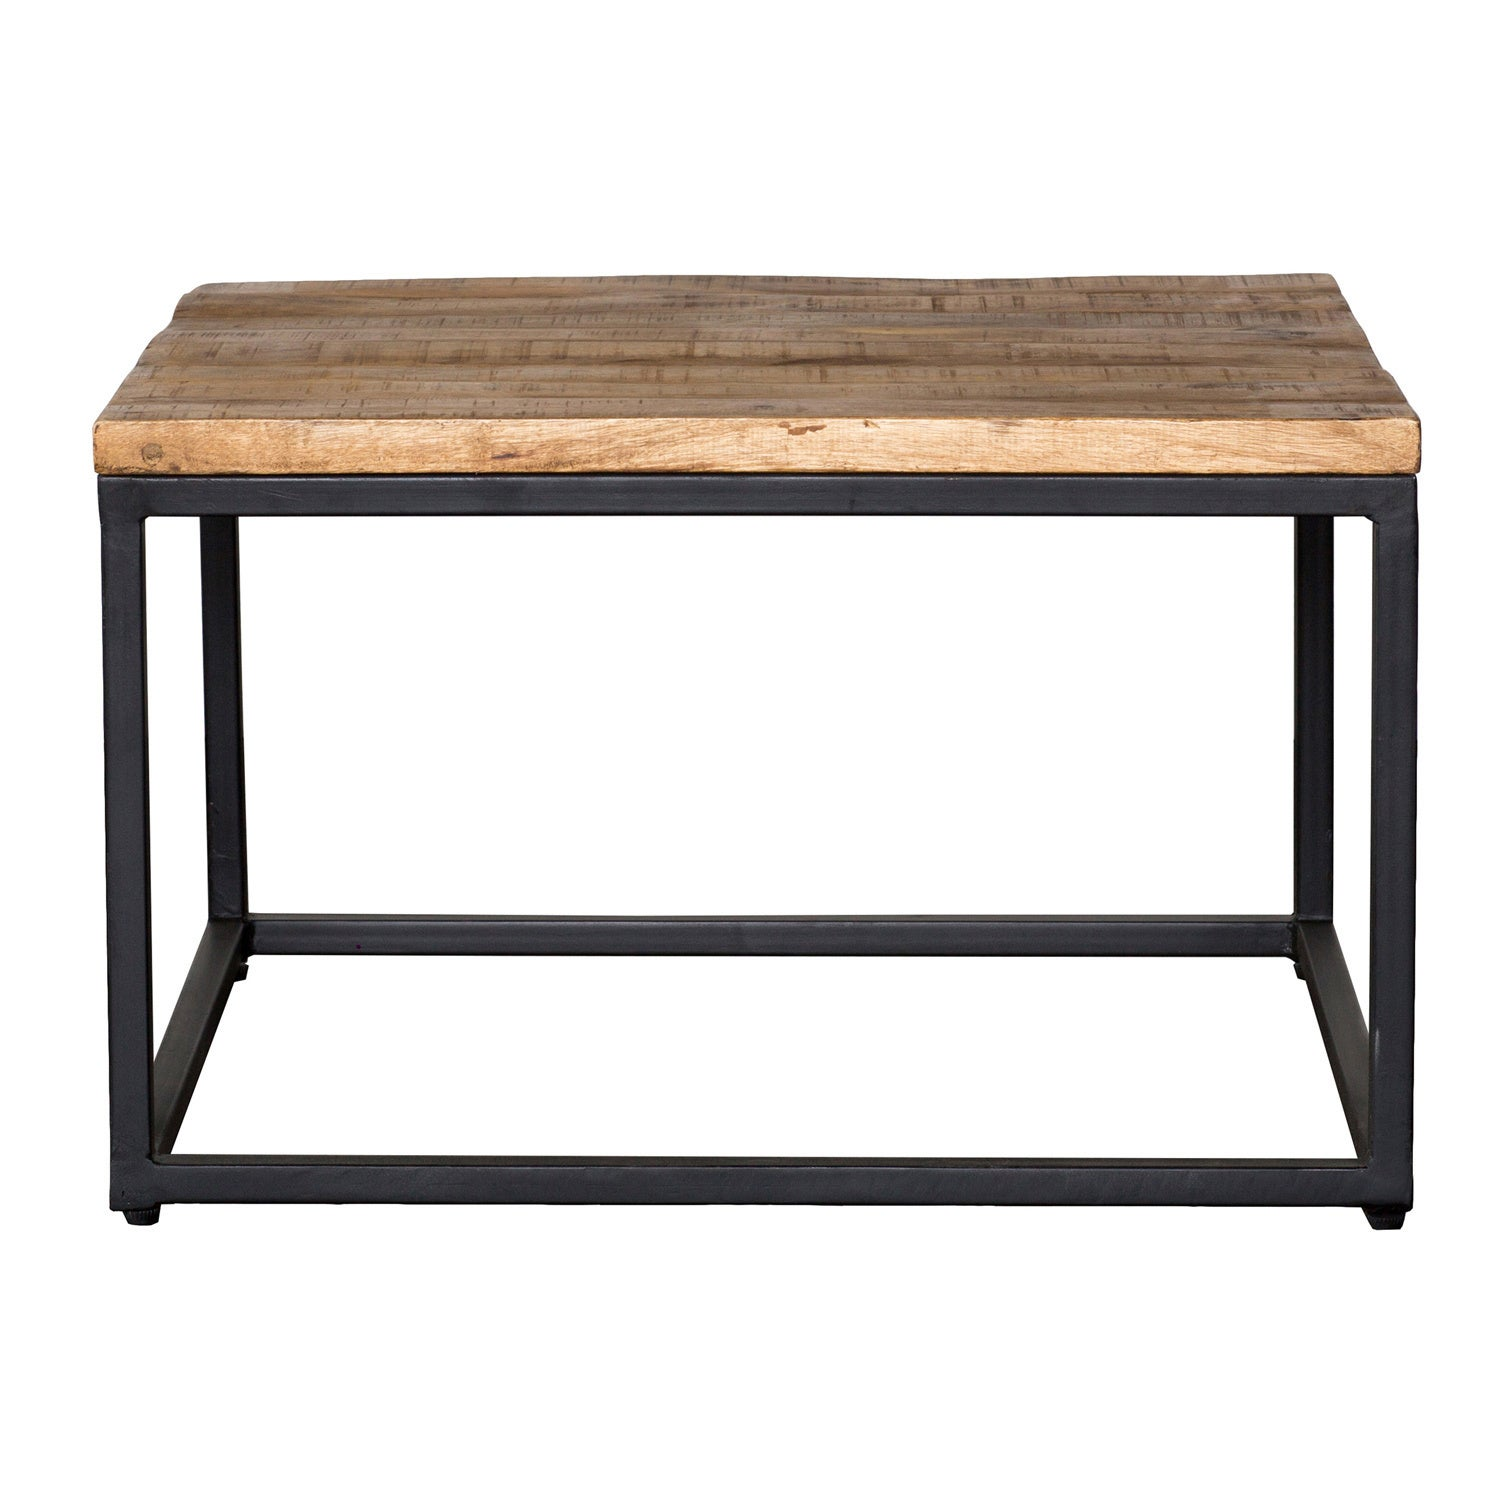 Shop Paris Natural Wood And Iron 30 Inch Square Coffee Table By Kosas Home    On Sale   Free Shipping Today   Overstock.com   10812699